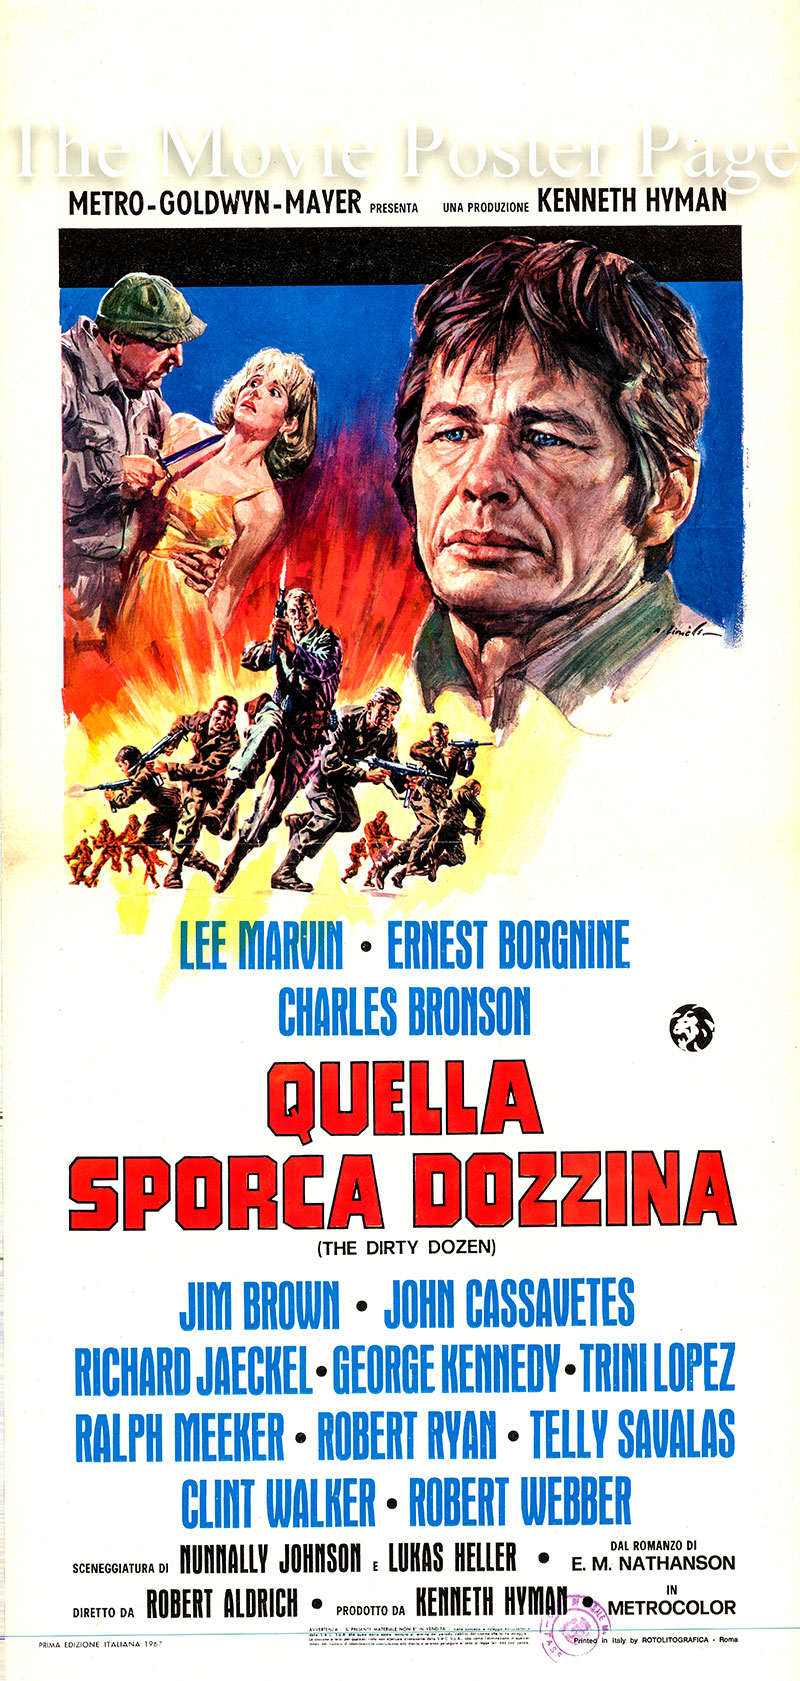 This is an Italian locandina poster for the 1967 Robert Aldrich film <i>The Dirty Dozen</i> starring Lee Marvin as Major John Reisman.